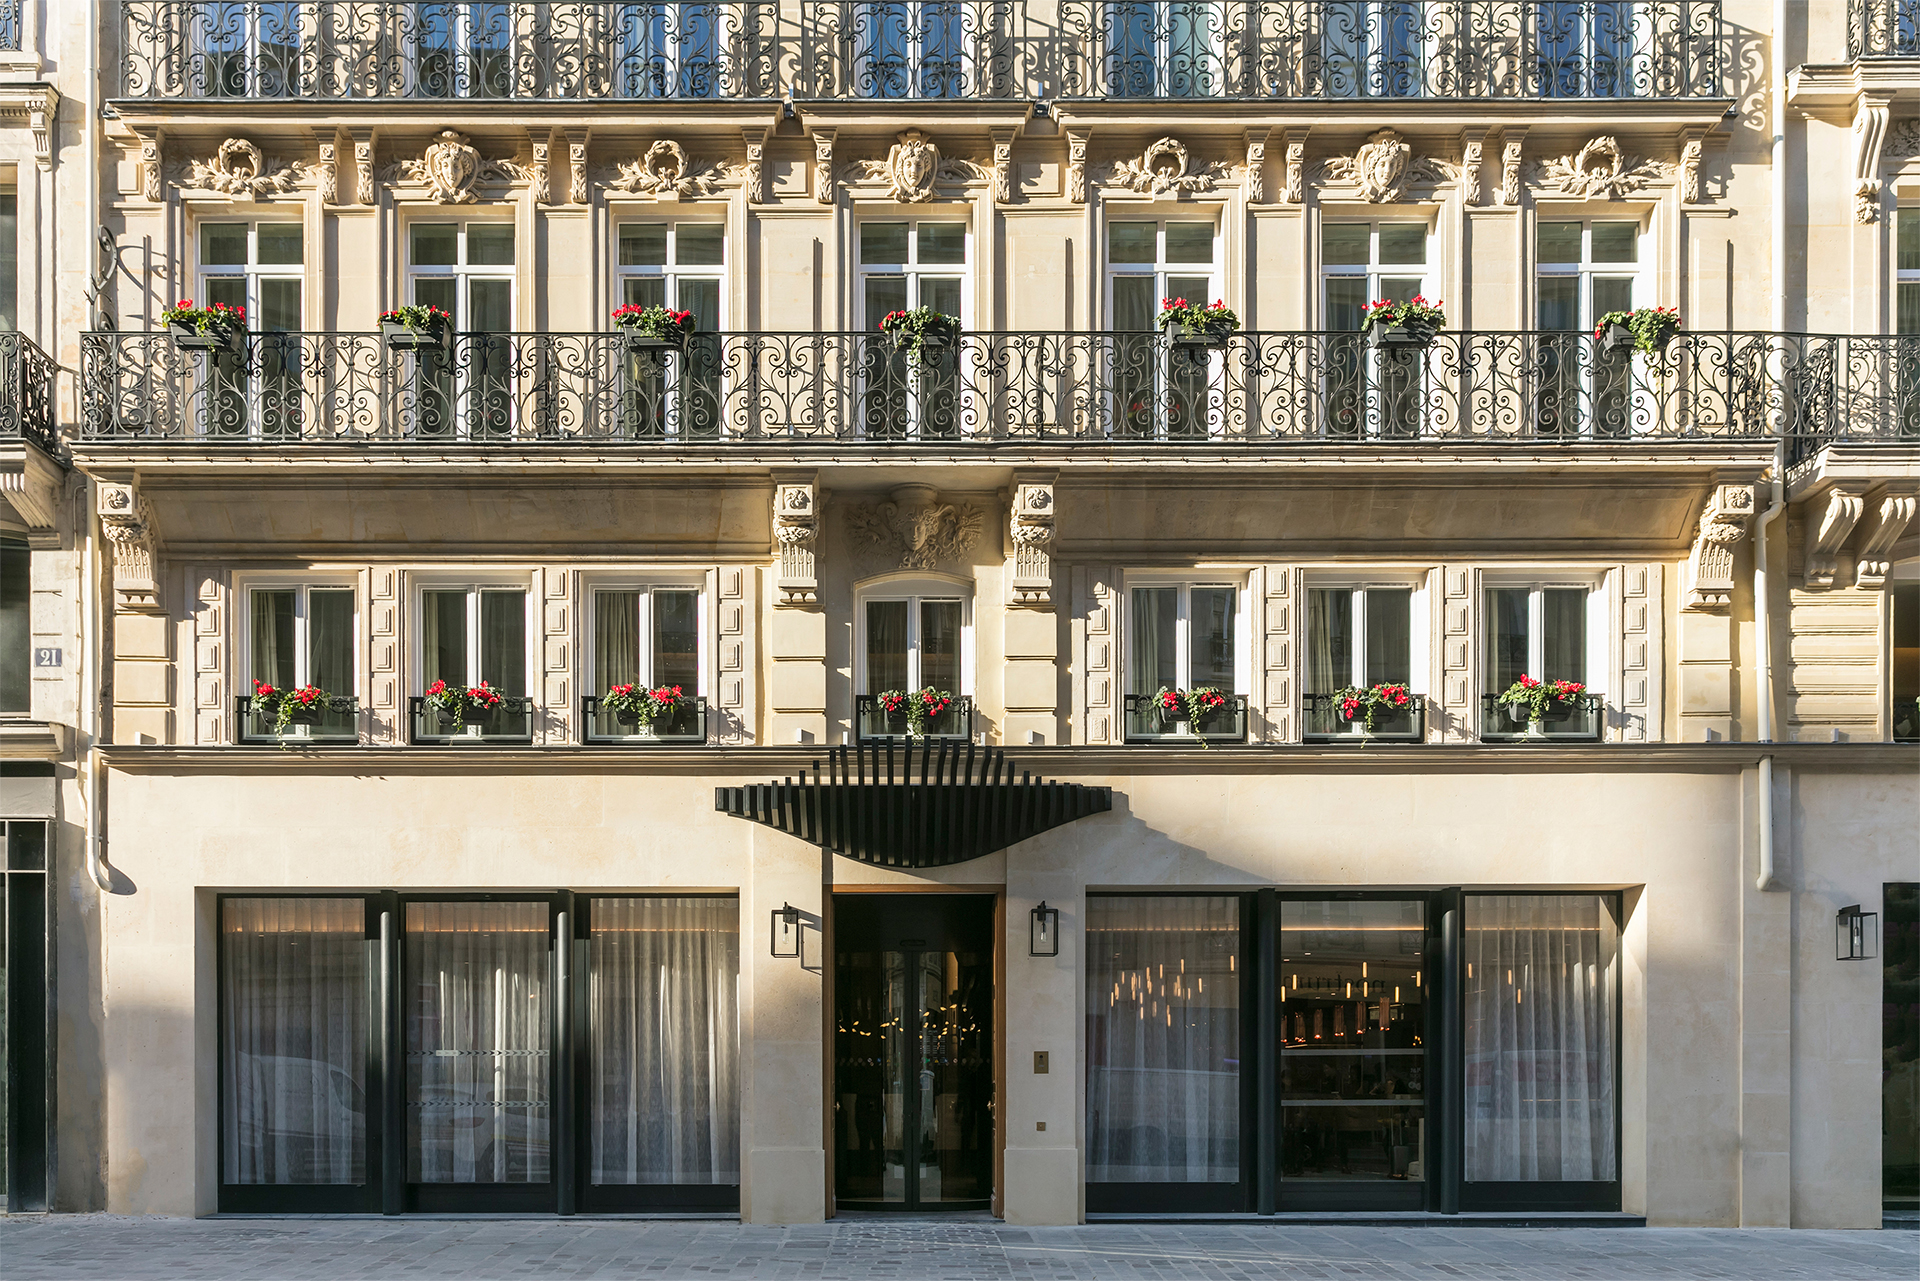 PullCast's Luxury Hotel Recommendations for Maison et Objet in Paris! maison et objet PullCast's Luxury Hotel Recommendations for Maison et Objet in Paris! Maison Albar